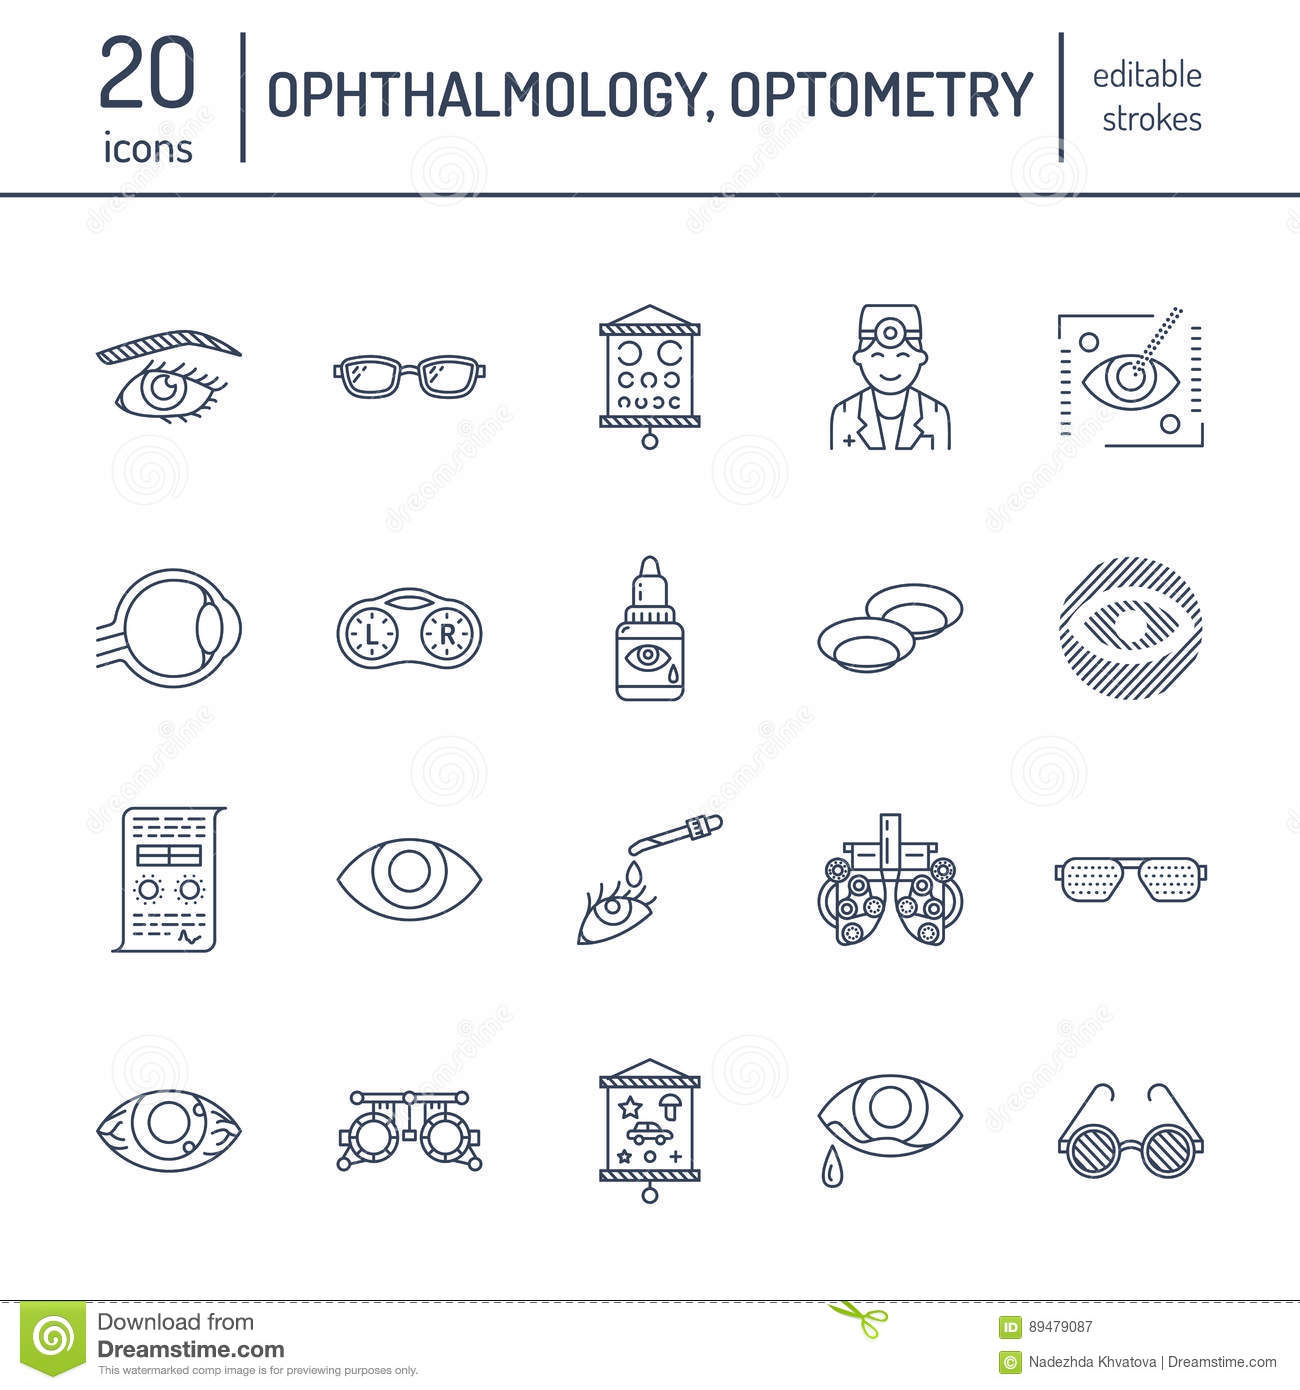 b6926bedf871 Ophthalmology, eyes health care line icons. Optometry equipment, contact  lenses, glasses, blindness. Vision correction thin linear signs for oculist  clinic.